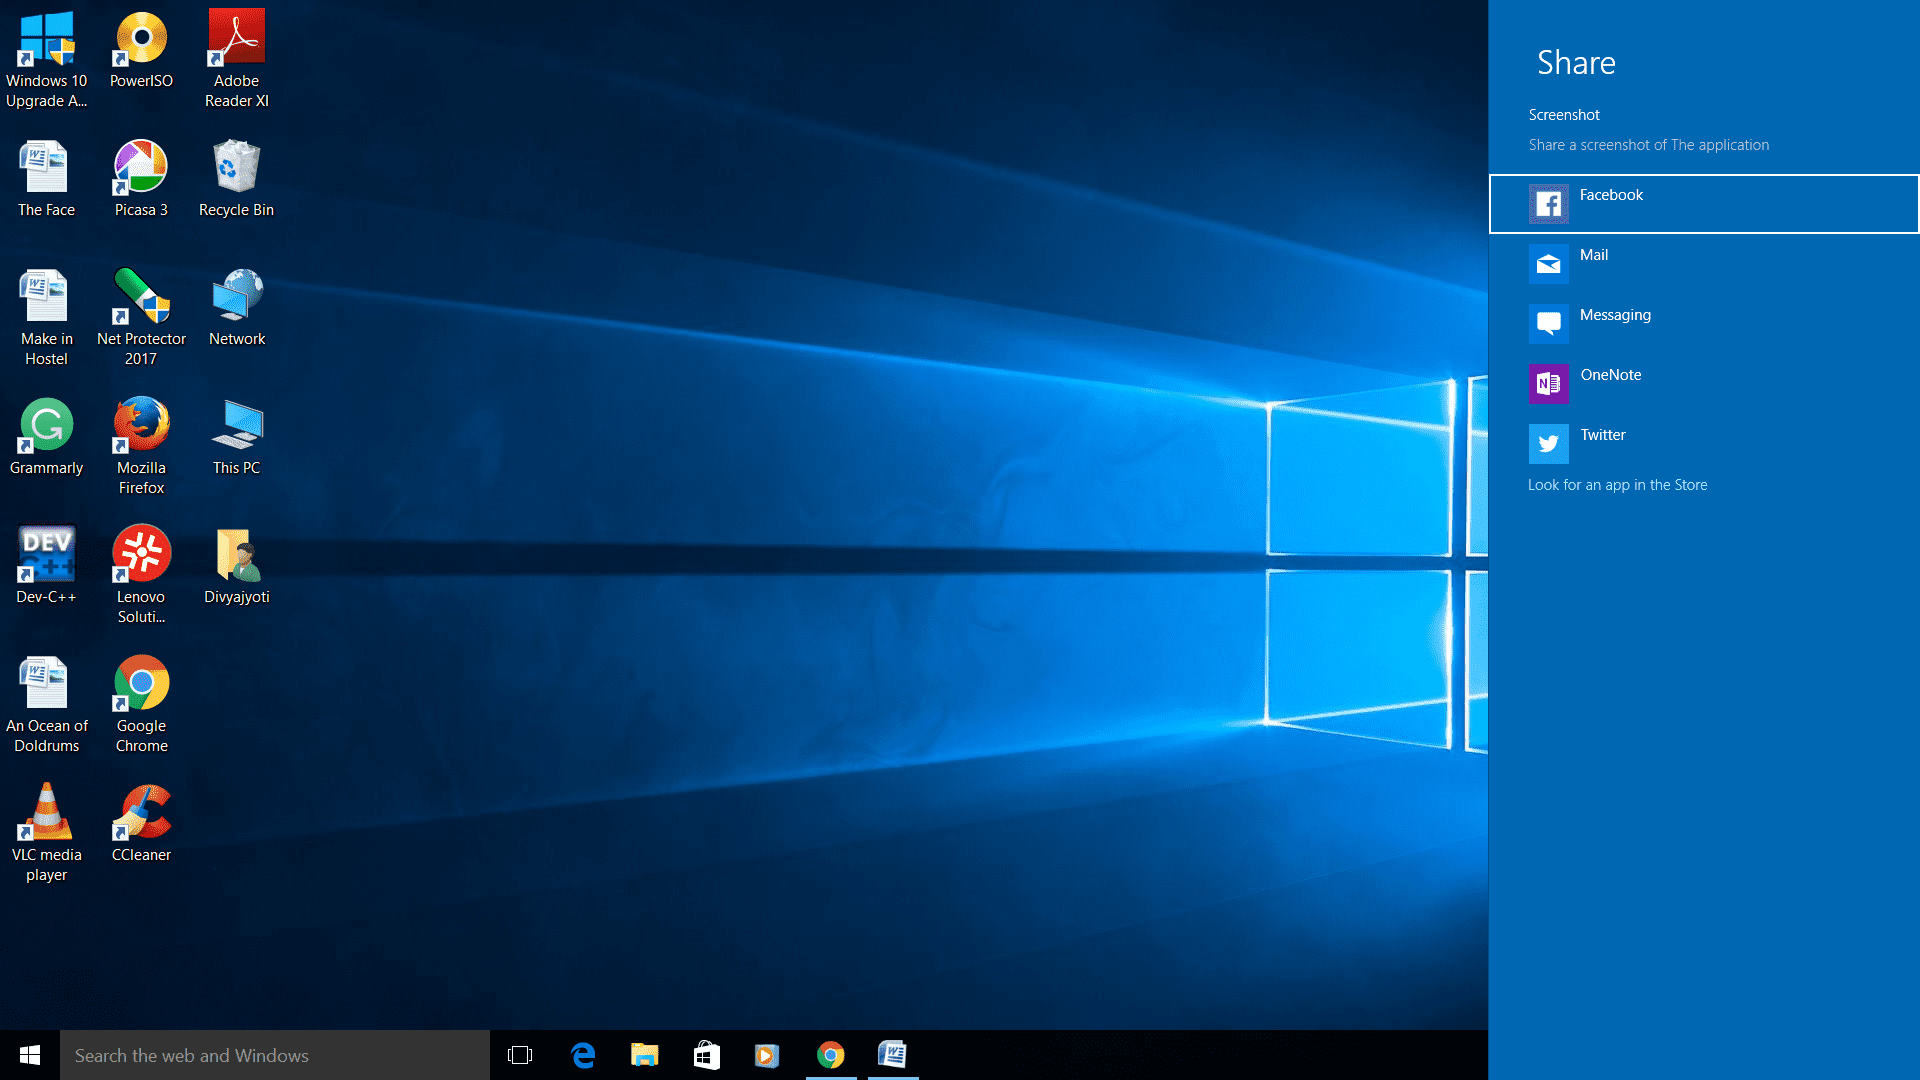 How to Click Screenshots on Windows 10 using Win+H